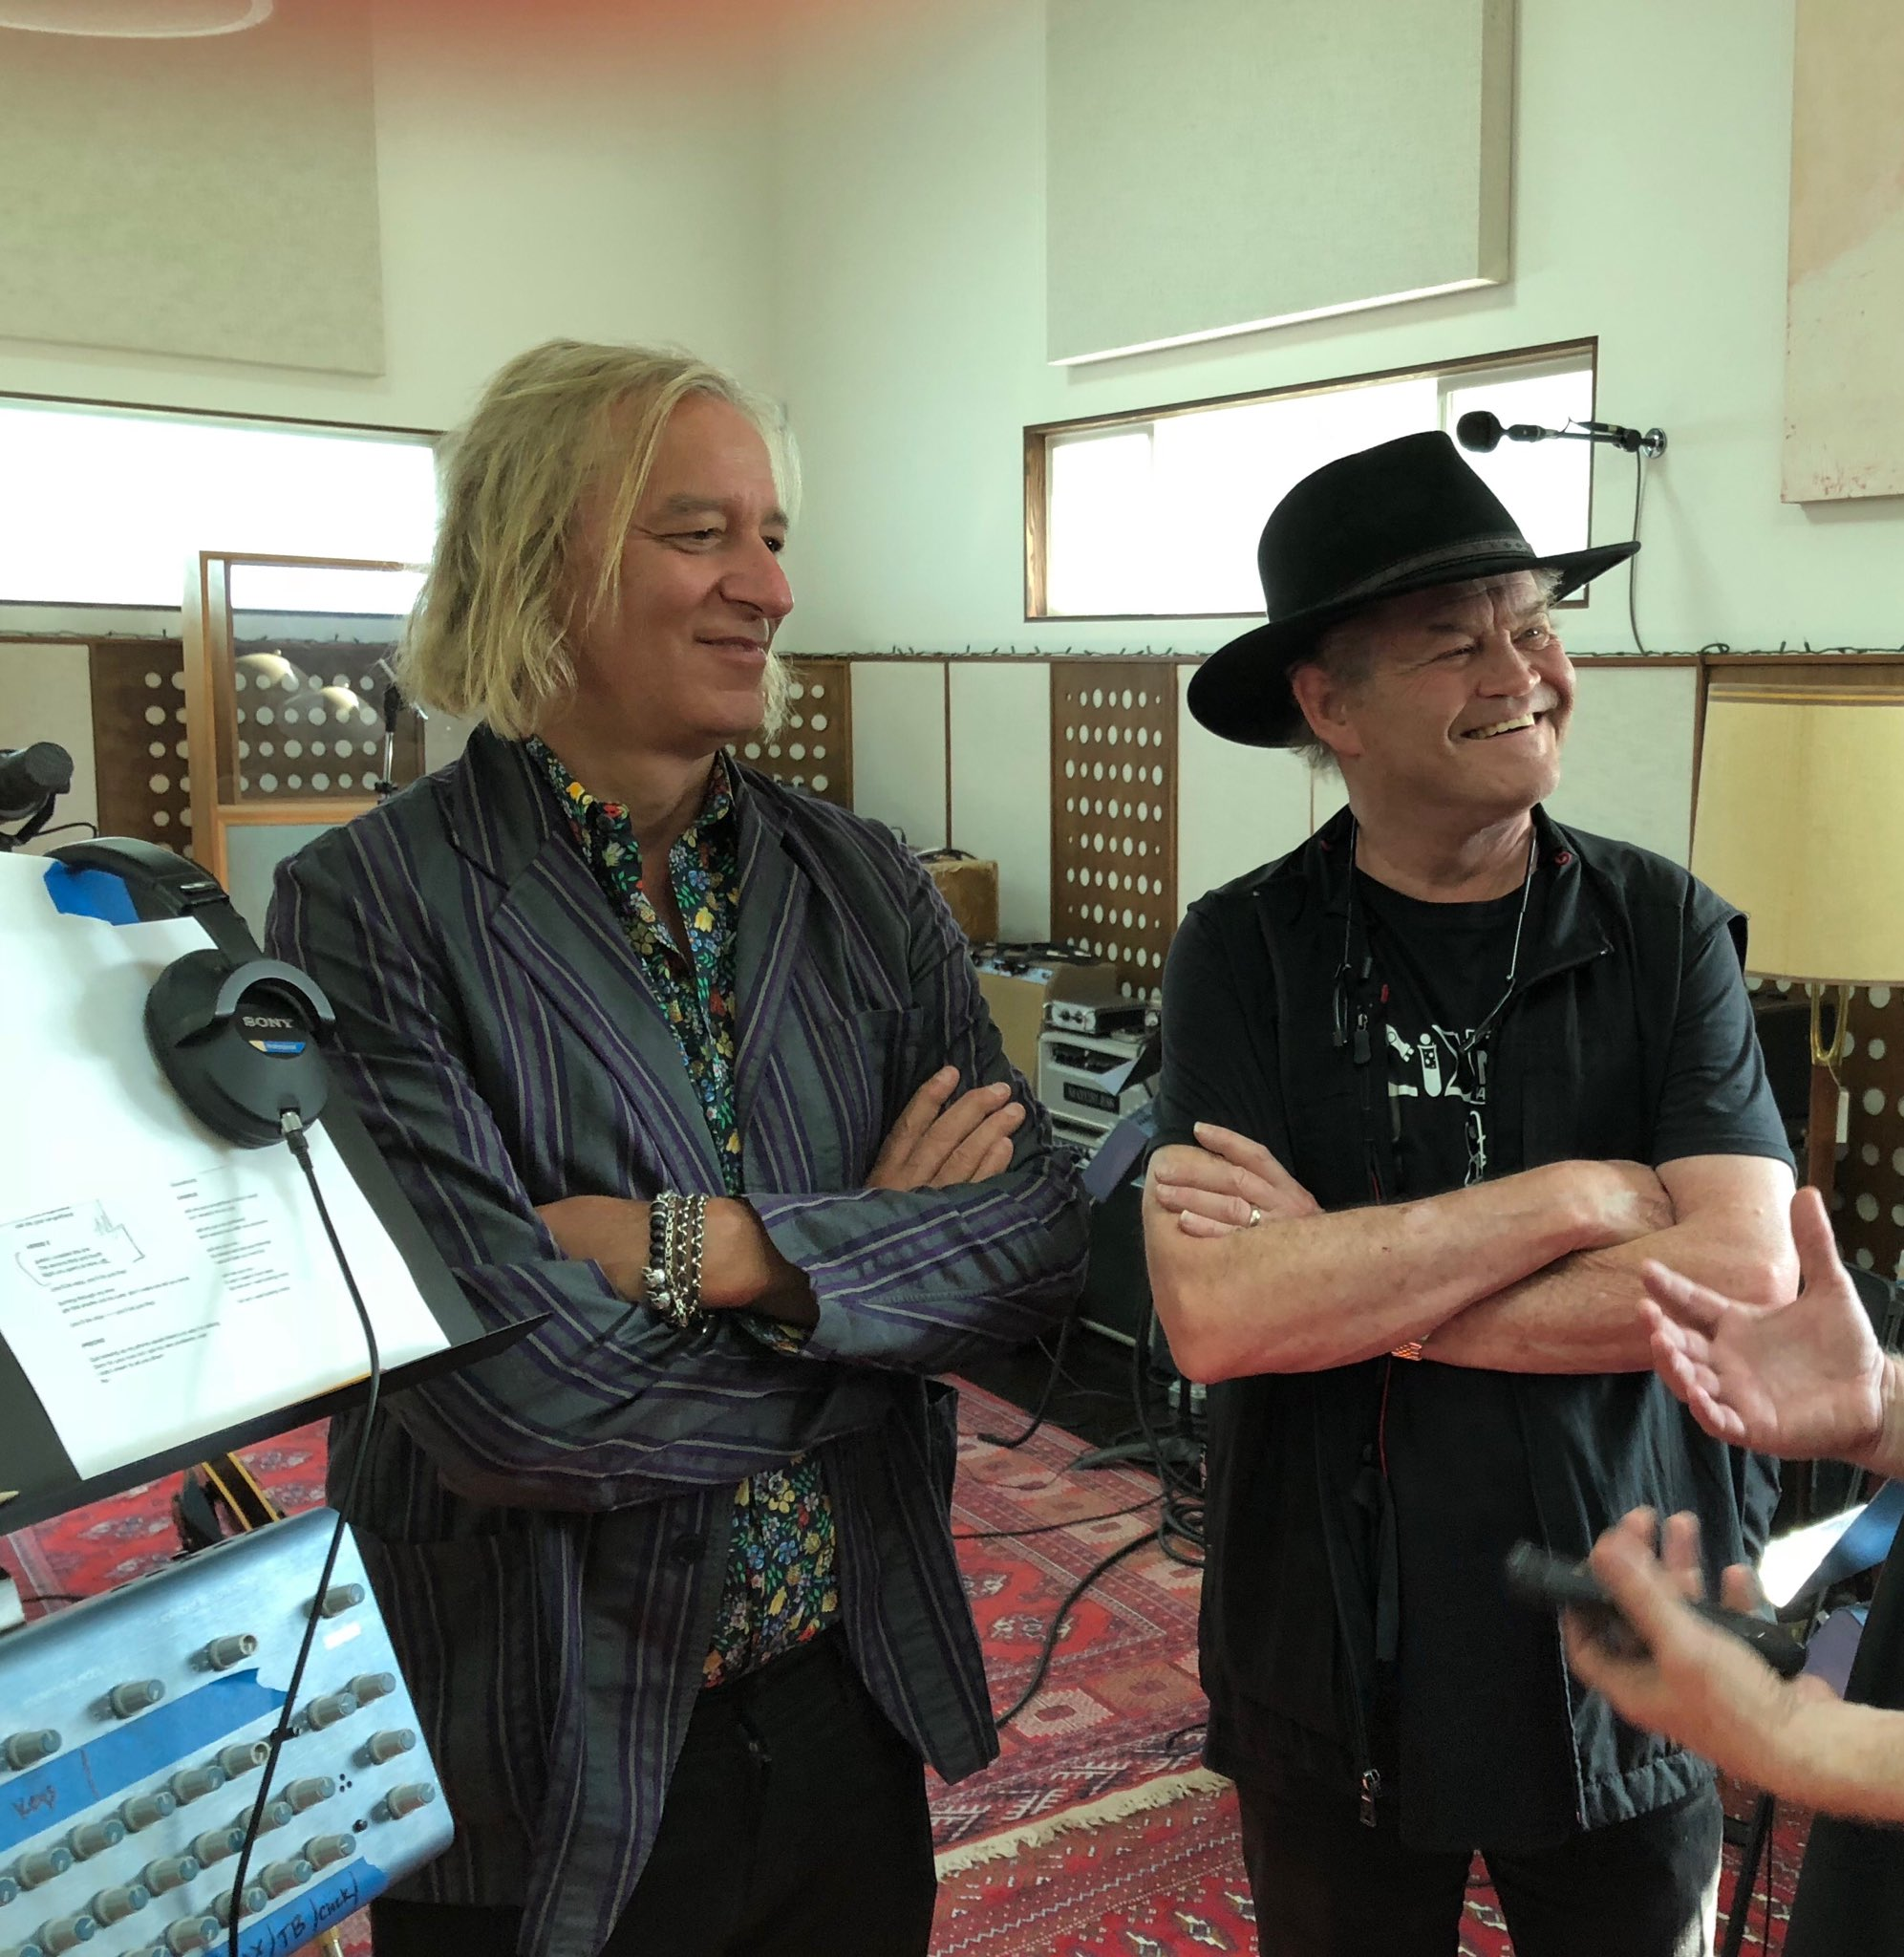 Happy Birthday, Peter Buck! Thanks for helping us on our new album